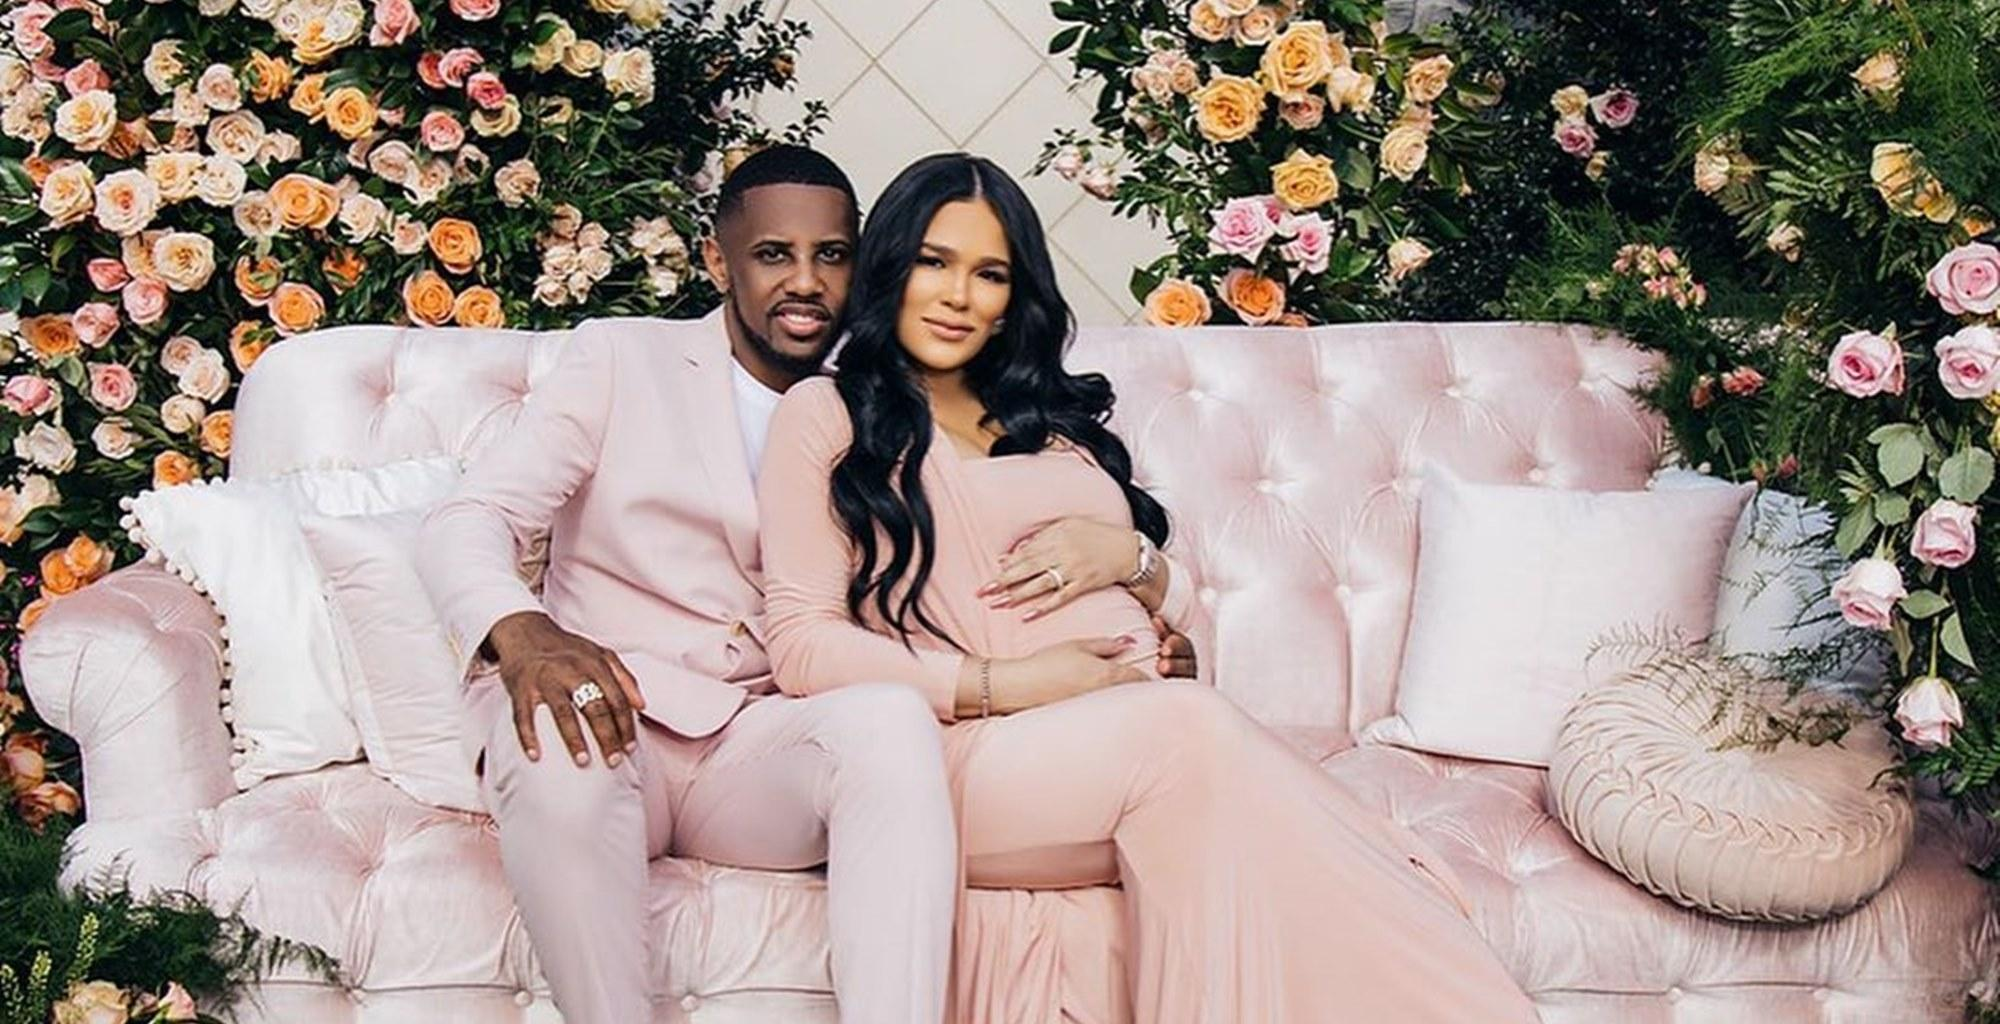 Emily B Looks Fantastic In New Maternity Photos -- Some Fans Are Still Not Ready To Forgive Fabolous